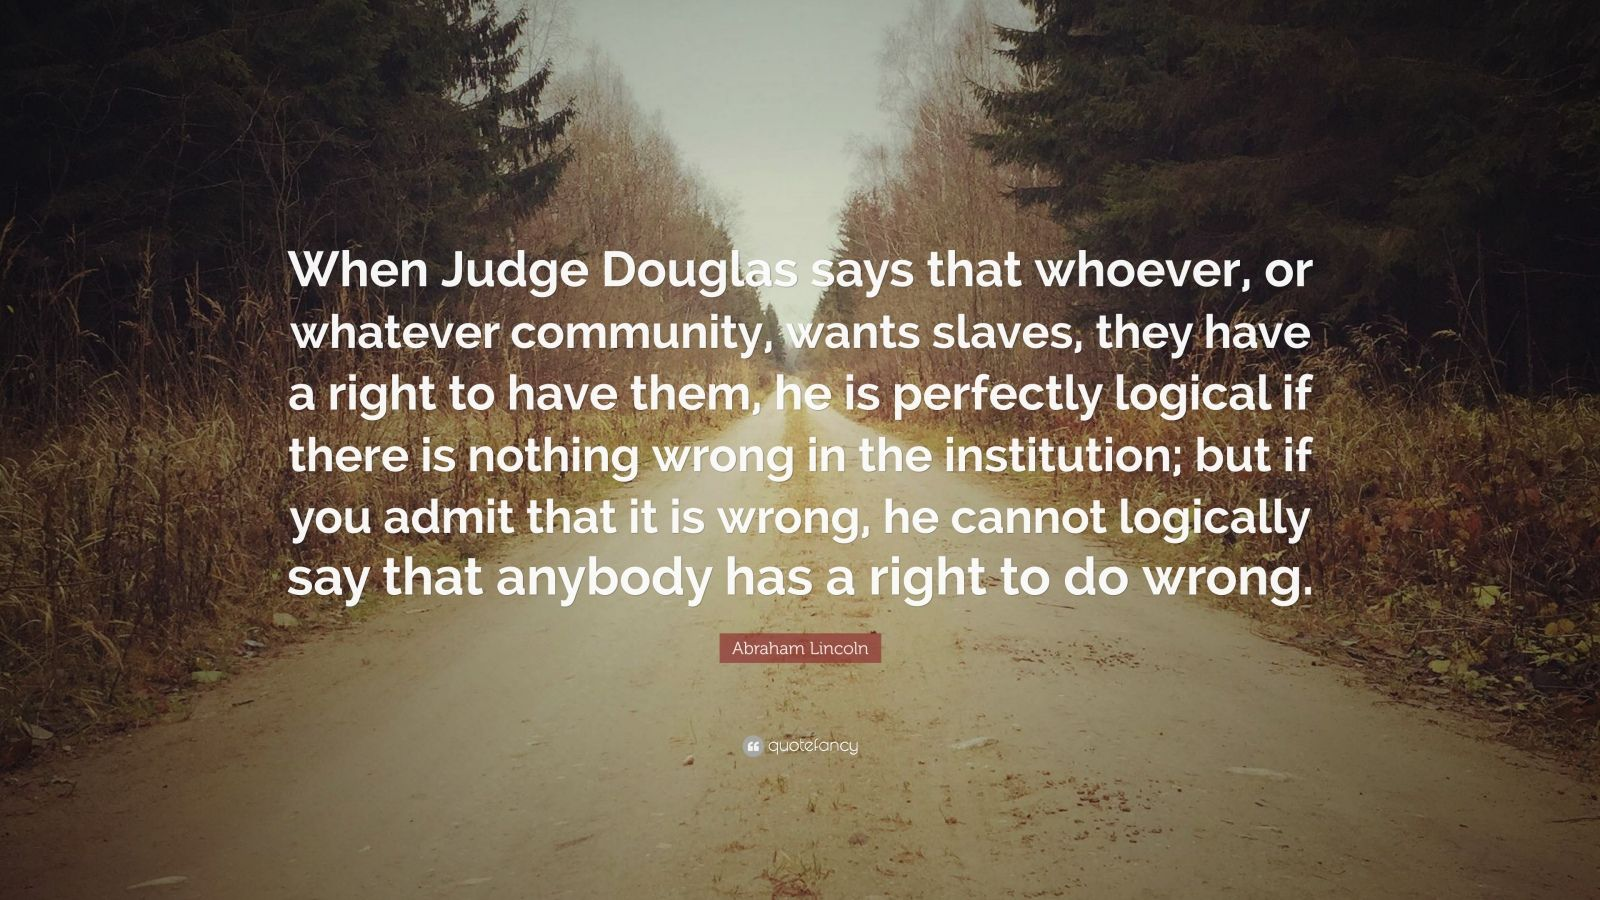 "Abraham Lincoln Quote: ""When Judge Douglas says that whoever, or whatever community, wants slaves, they have a right to have them, he is perfectly logical if there is nothing wrong in the institution; but if you admit that it is wrong, he cannot logically say that anybody has a right to do wrong."""